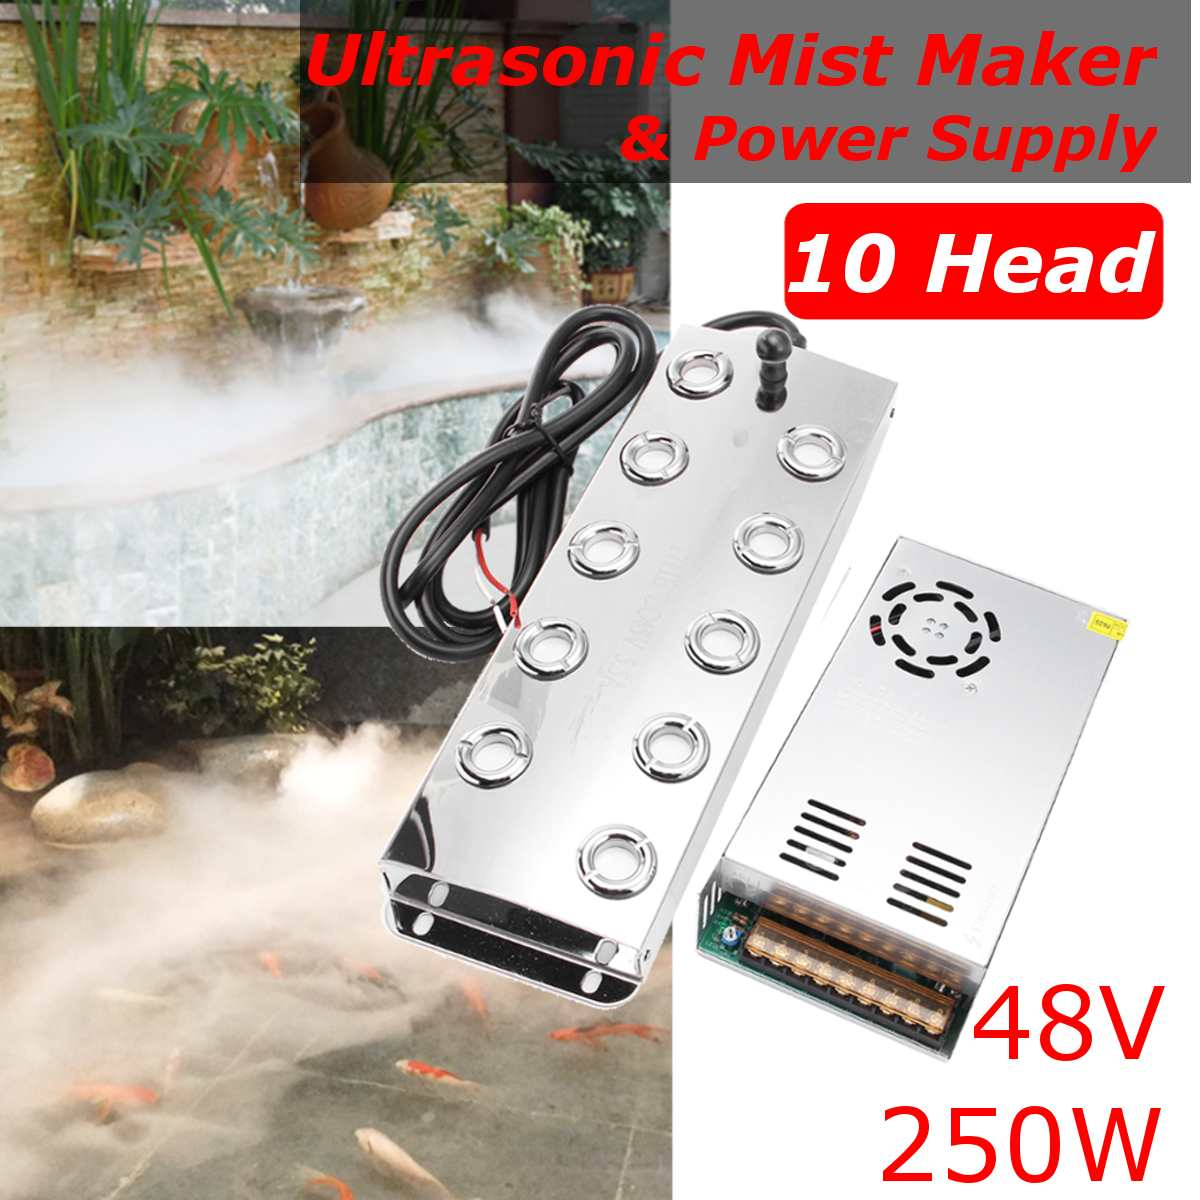 Dc48v Ultrasonic Atomizing 6 Head Atomizer 3kg H Mist Maker Fogger Humidifier Transducer Circuit Newest 10 5000ml Stainless Steel Air Greenhouse Aeromist